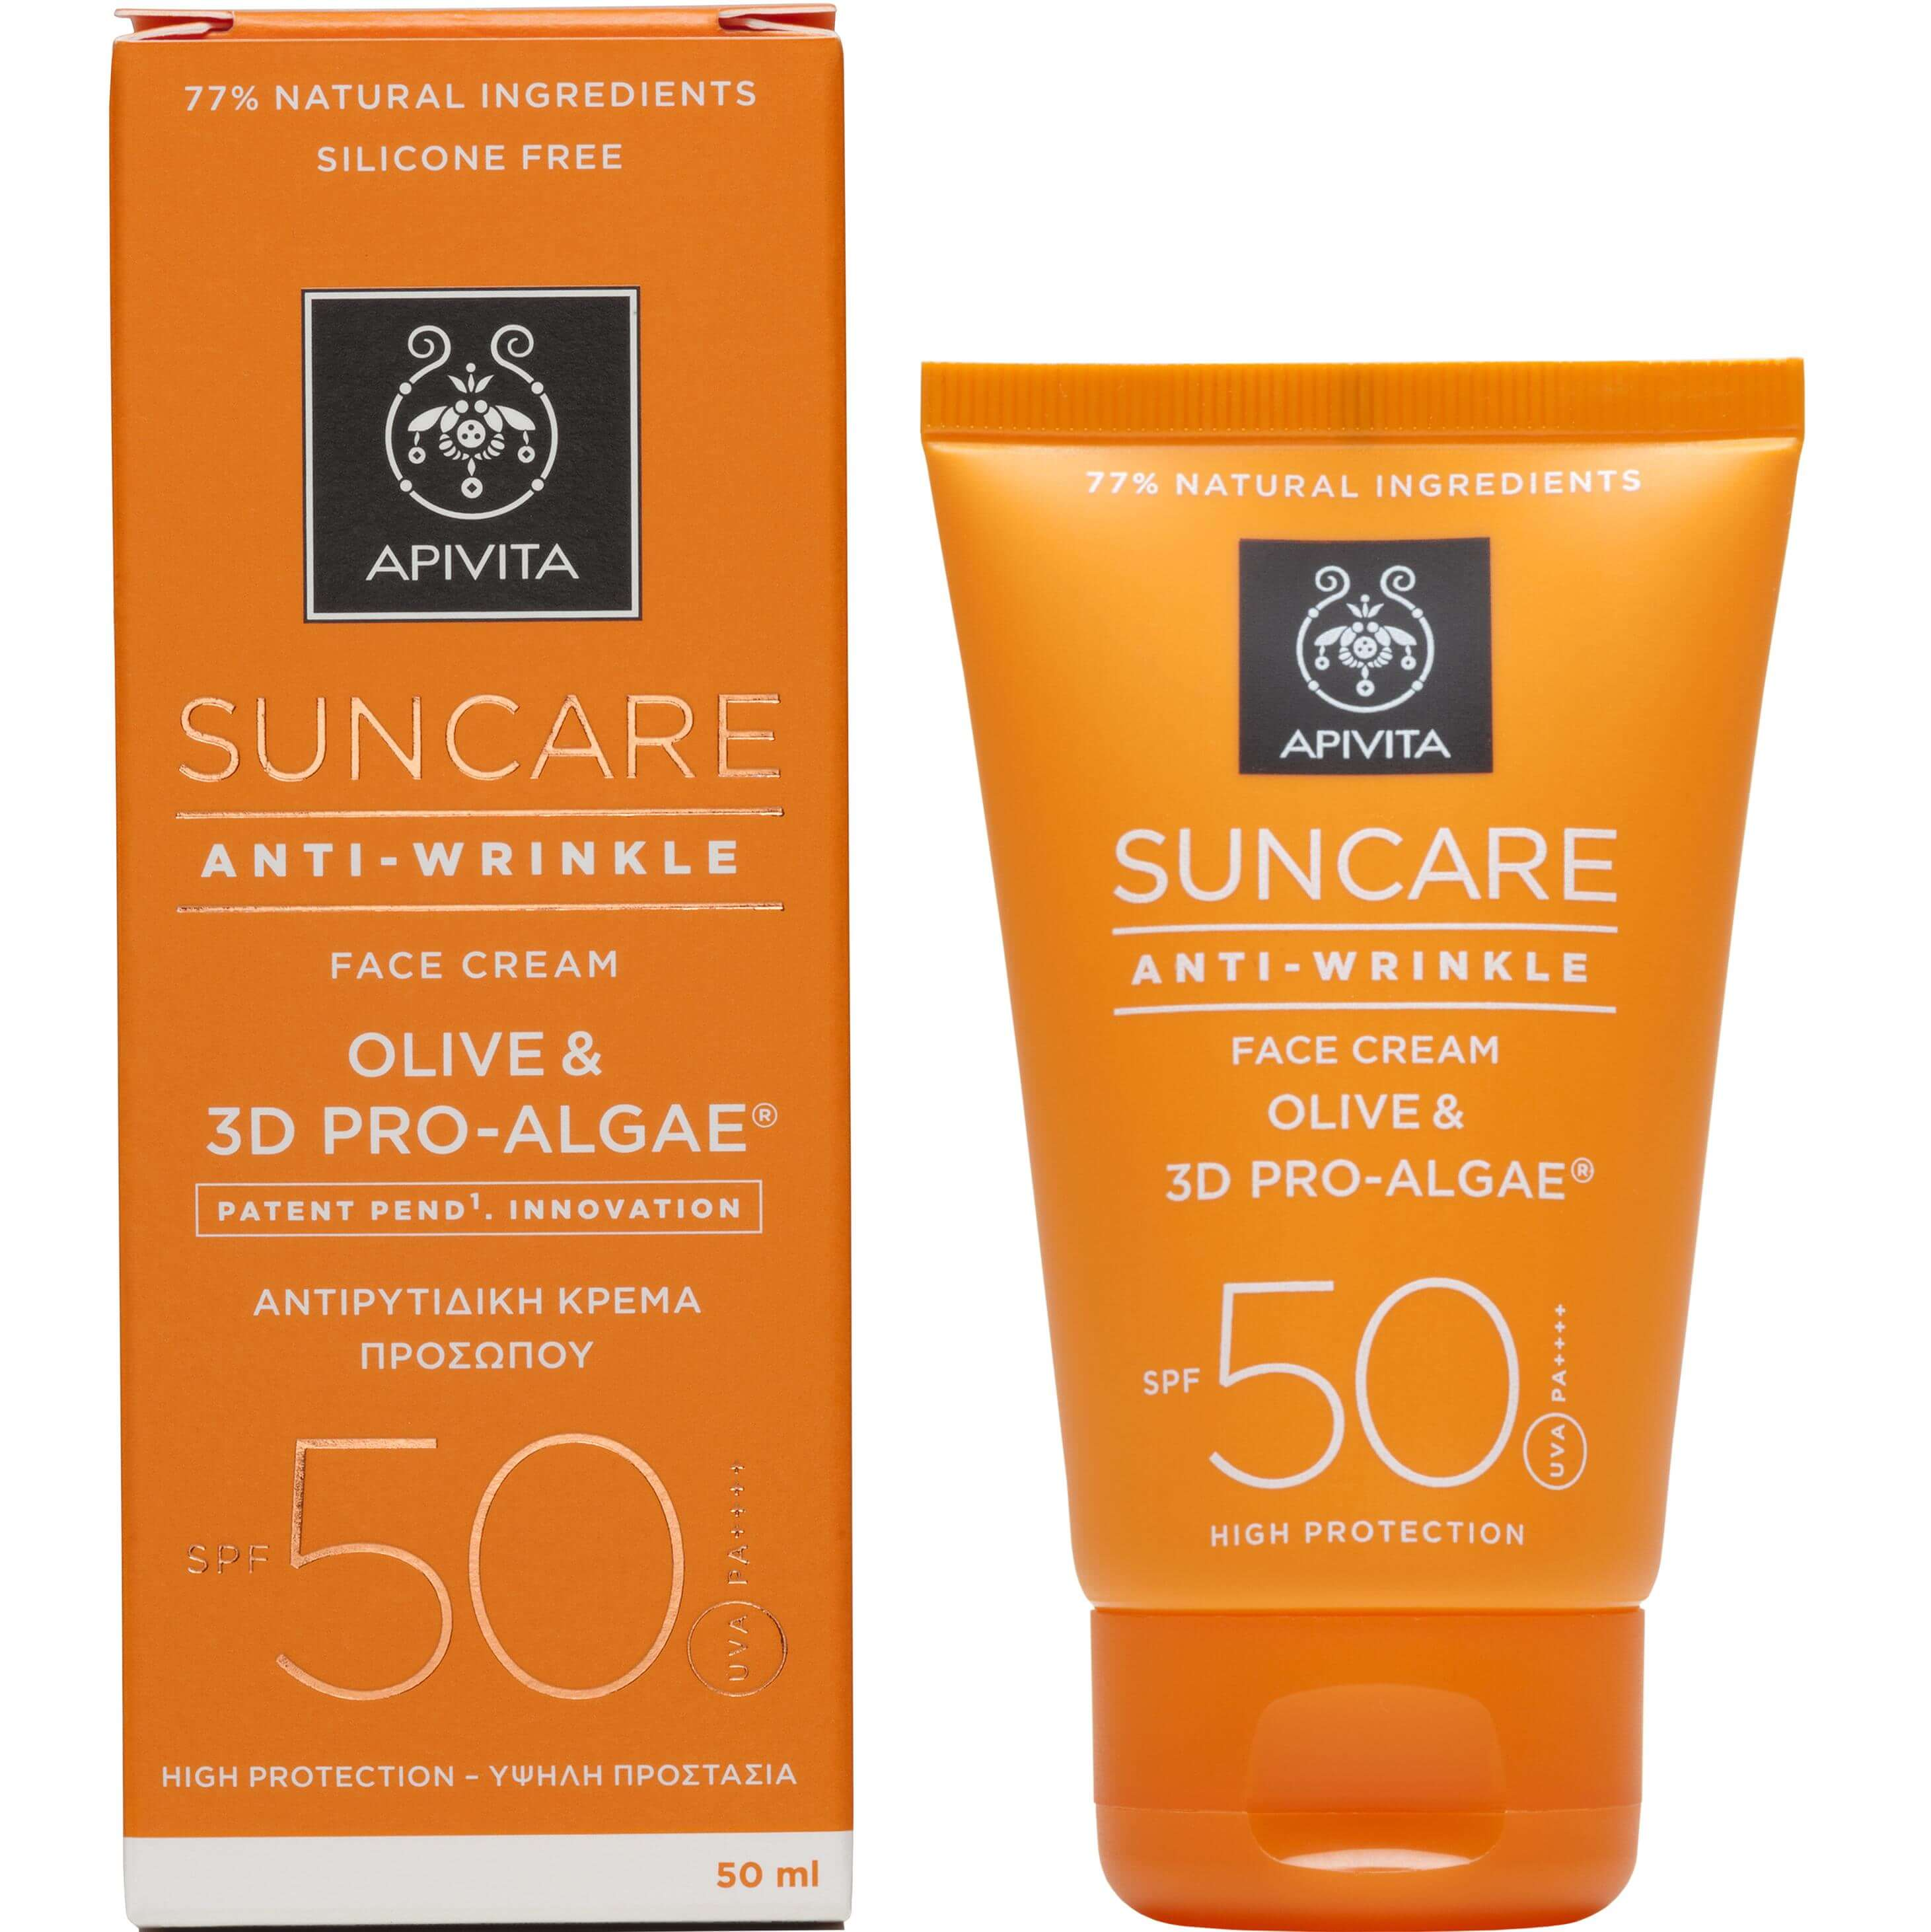 Apivita Suncare Anti-Wrinkle Face Cream Spf50 με Ελιά & 3D Pro-Algae® 50ml